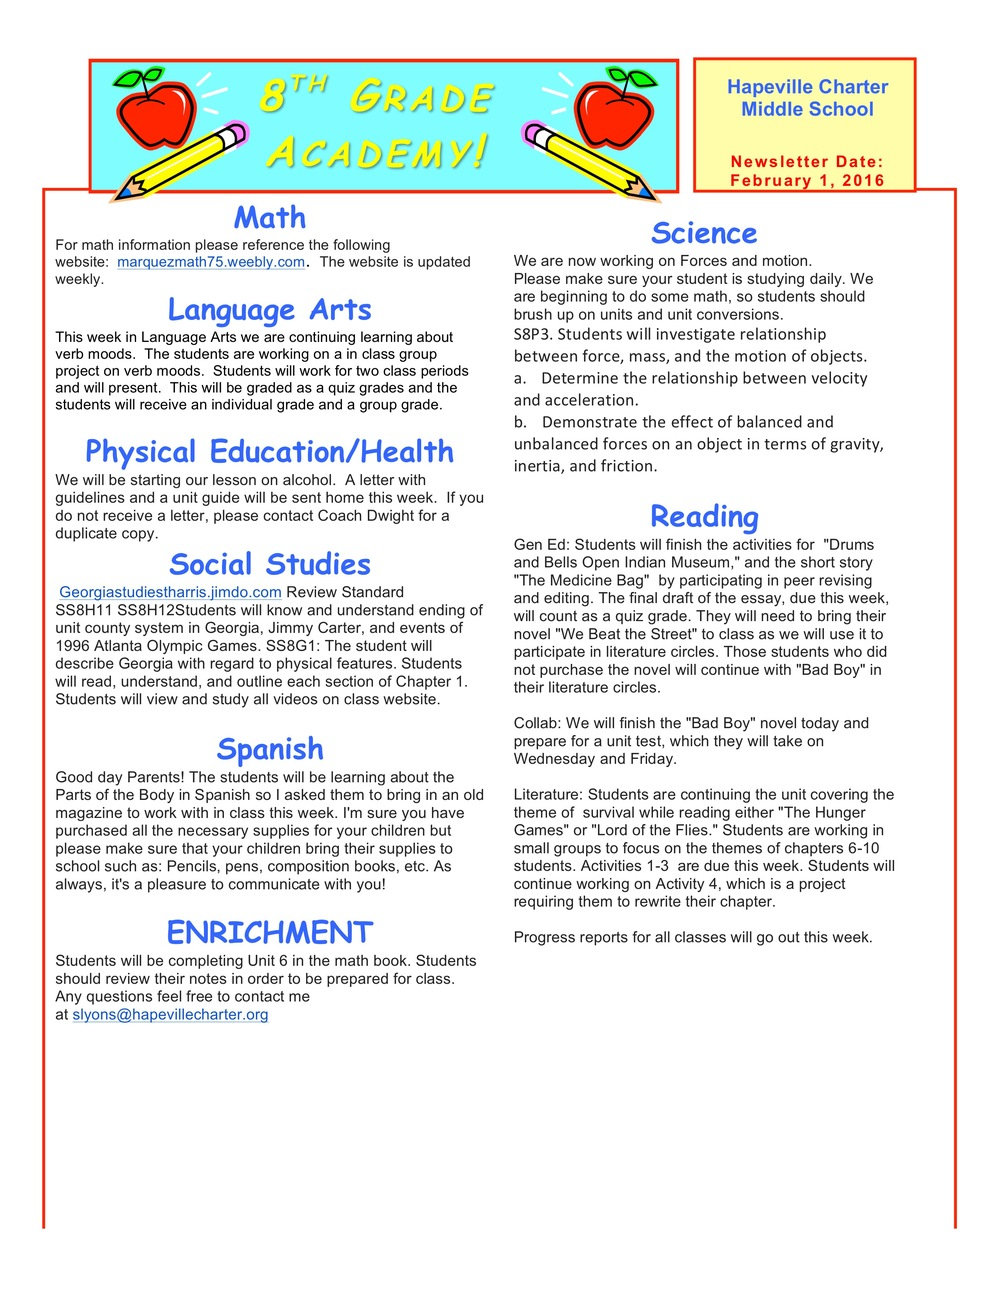 Newsletter Image8th-grade-2-1-2016.jpeg